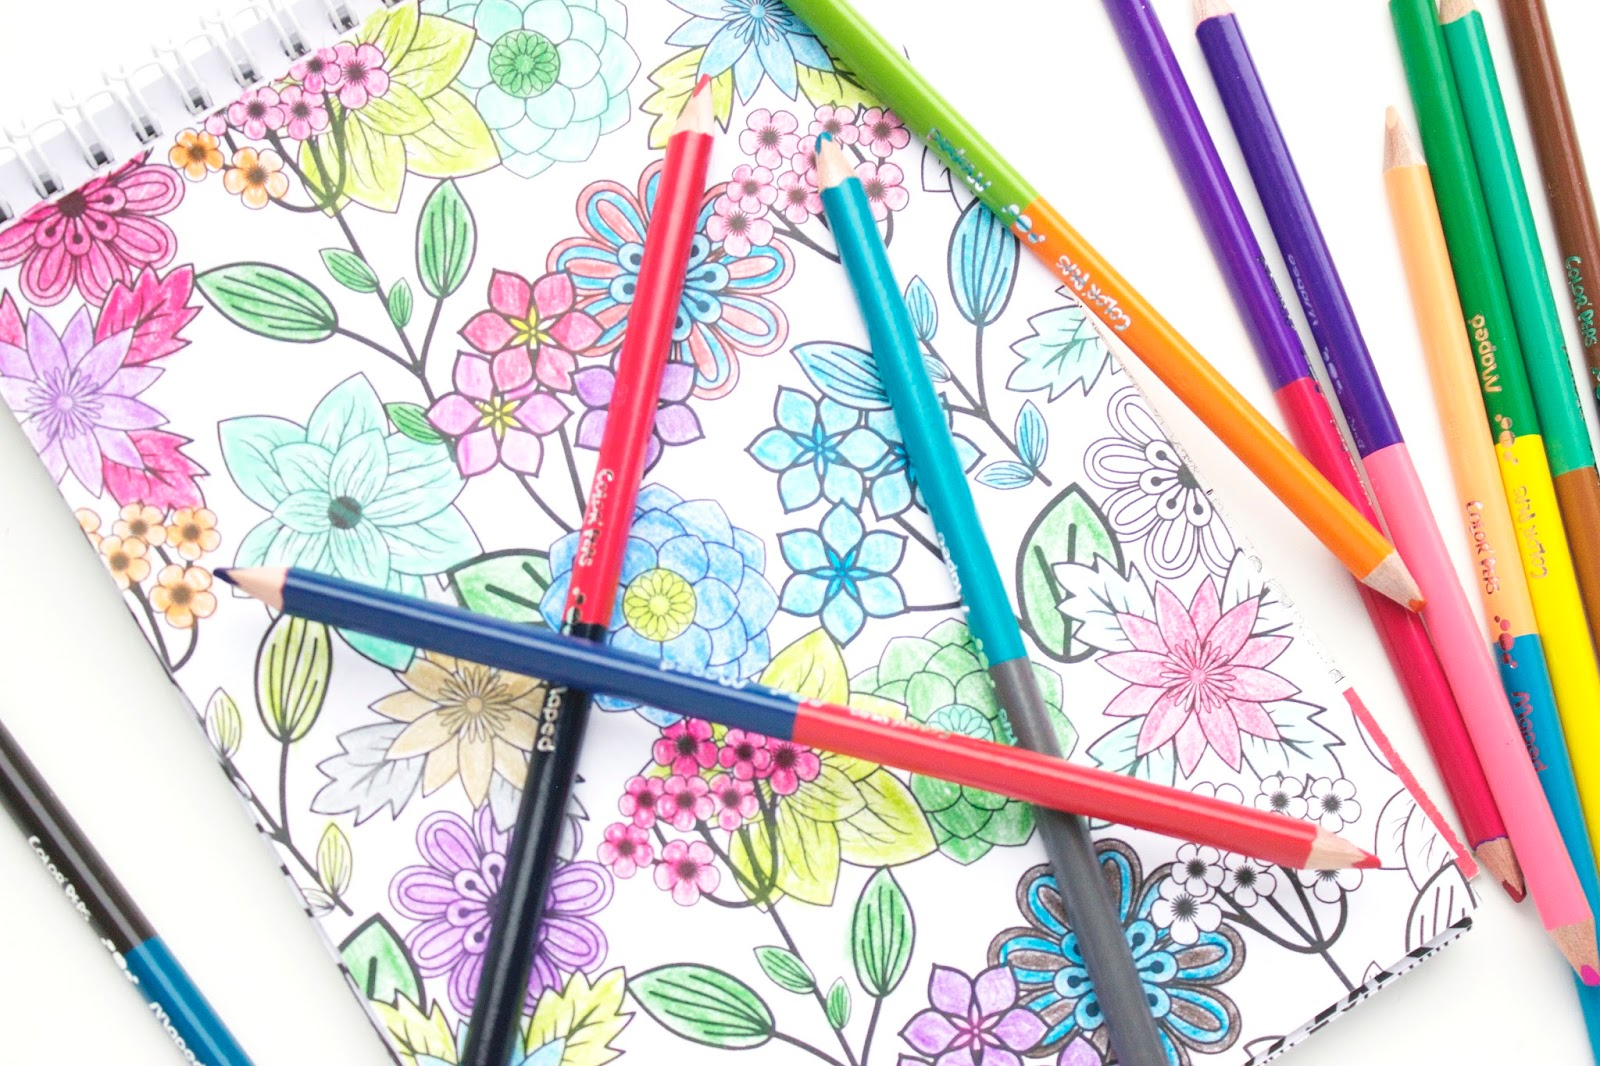 Mindfulness Colouring in, Coloring, Therapy, Adult Coloring